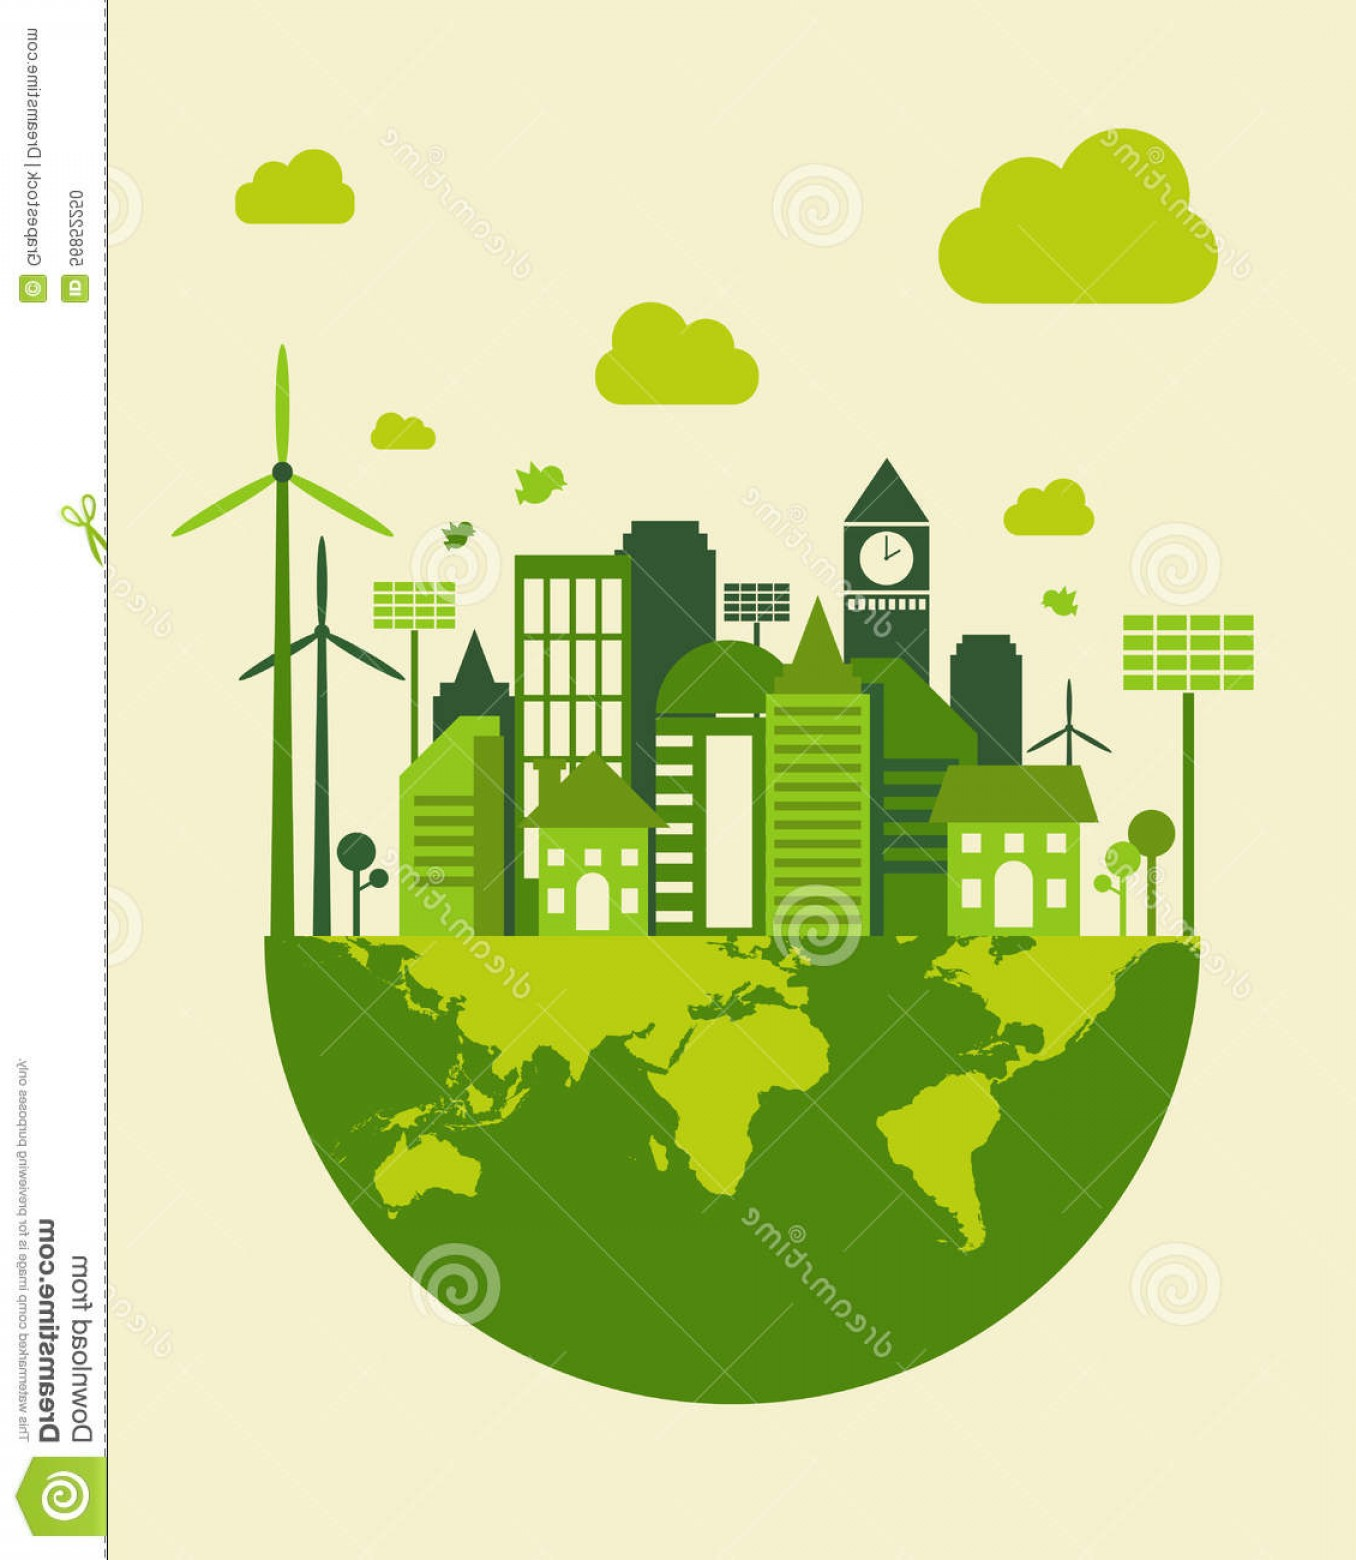 City Building Vector Free Download: Green City Building Save Earth Concept Vector Illustration